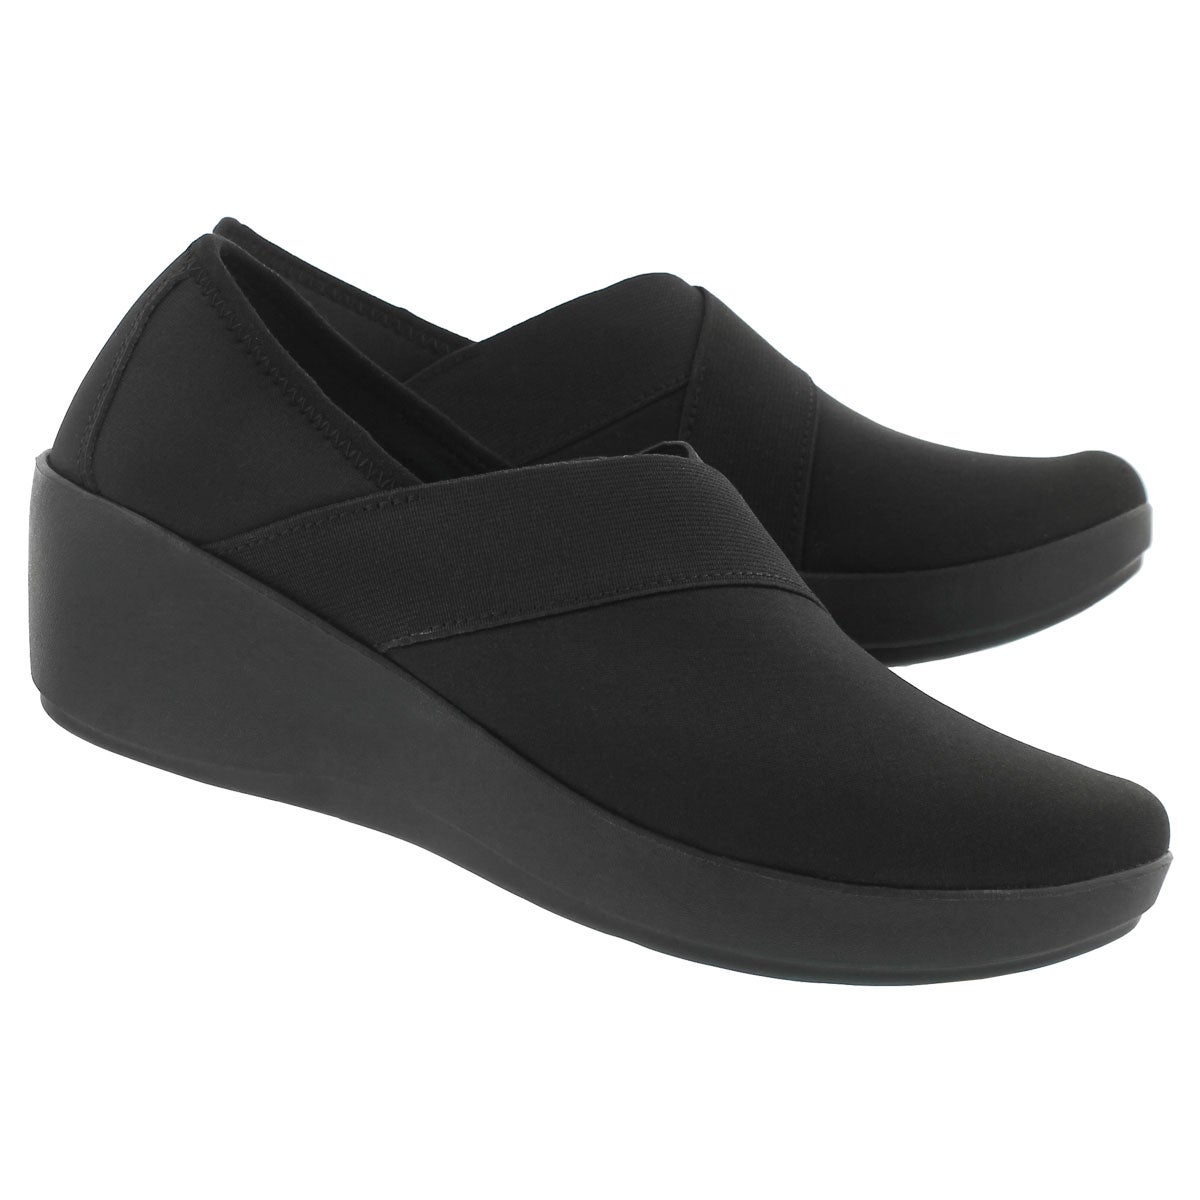 Lds Busy Day Stretch blk/blk wedge